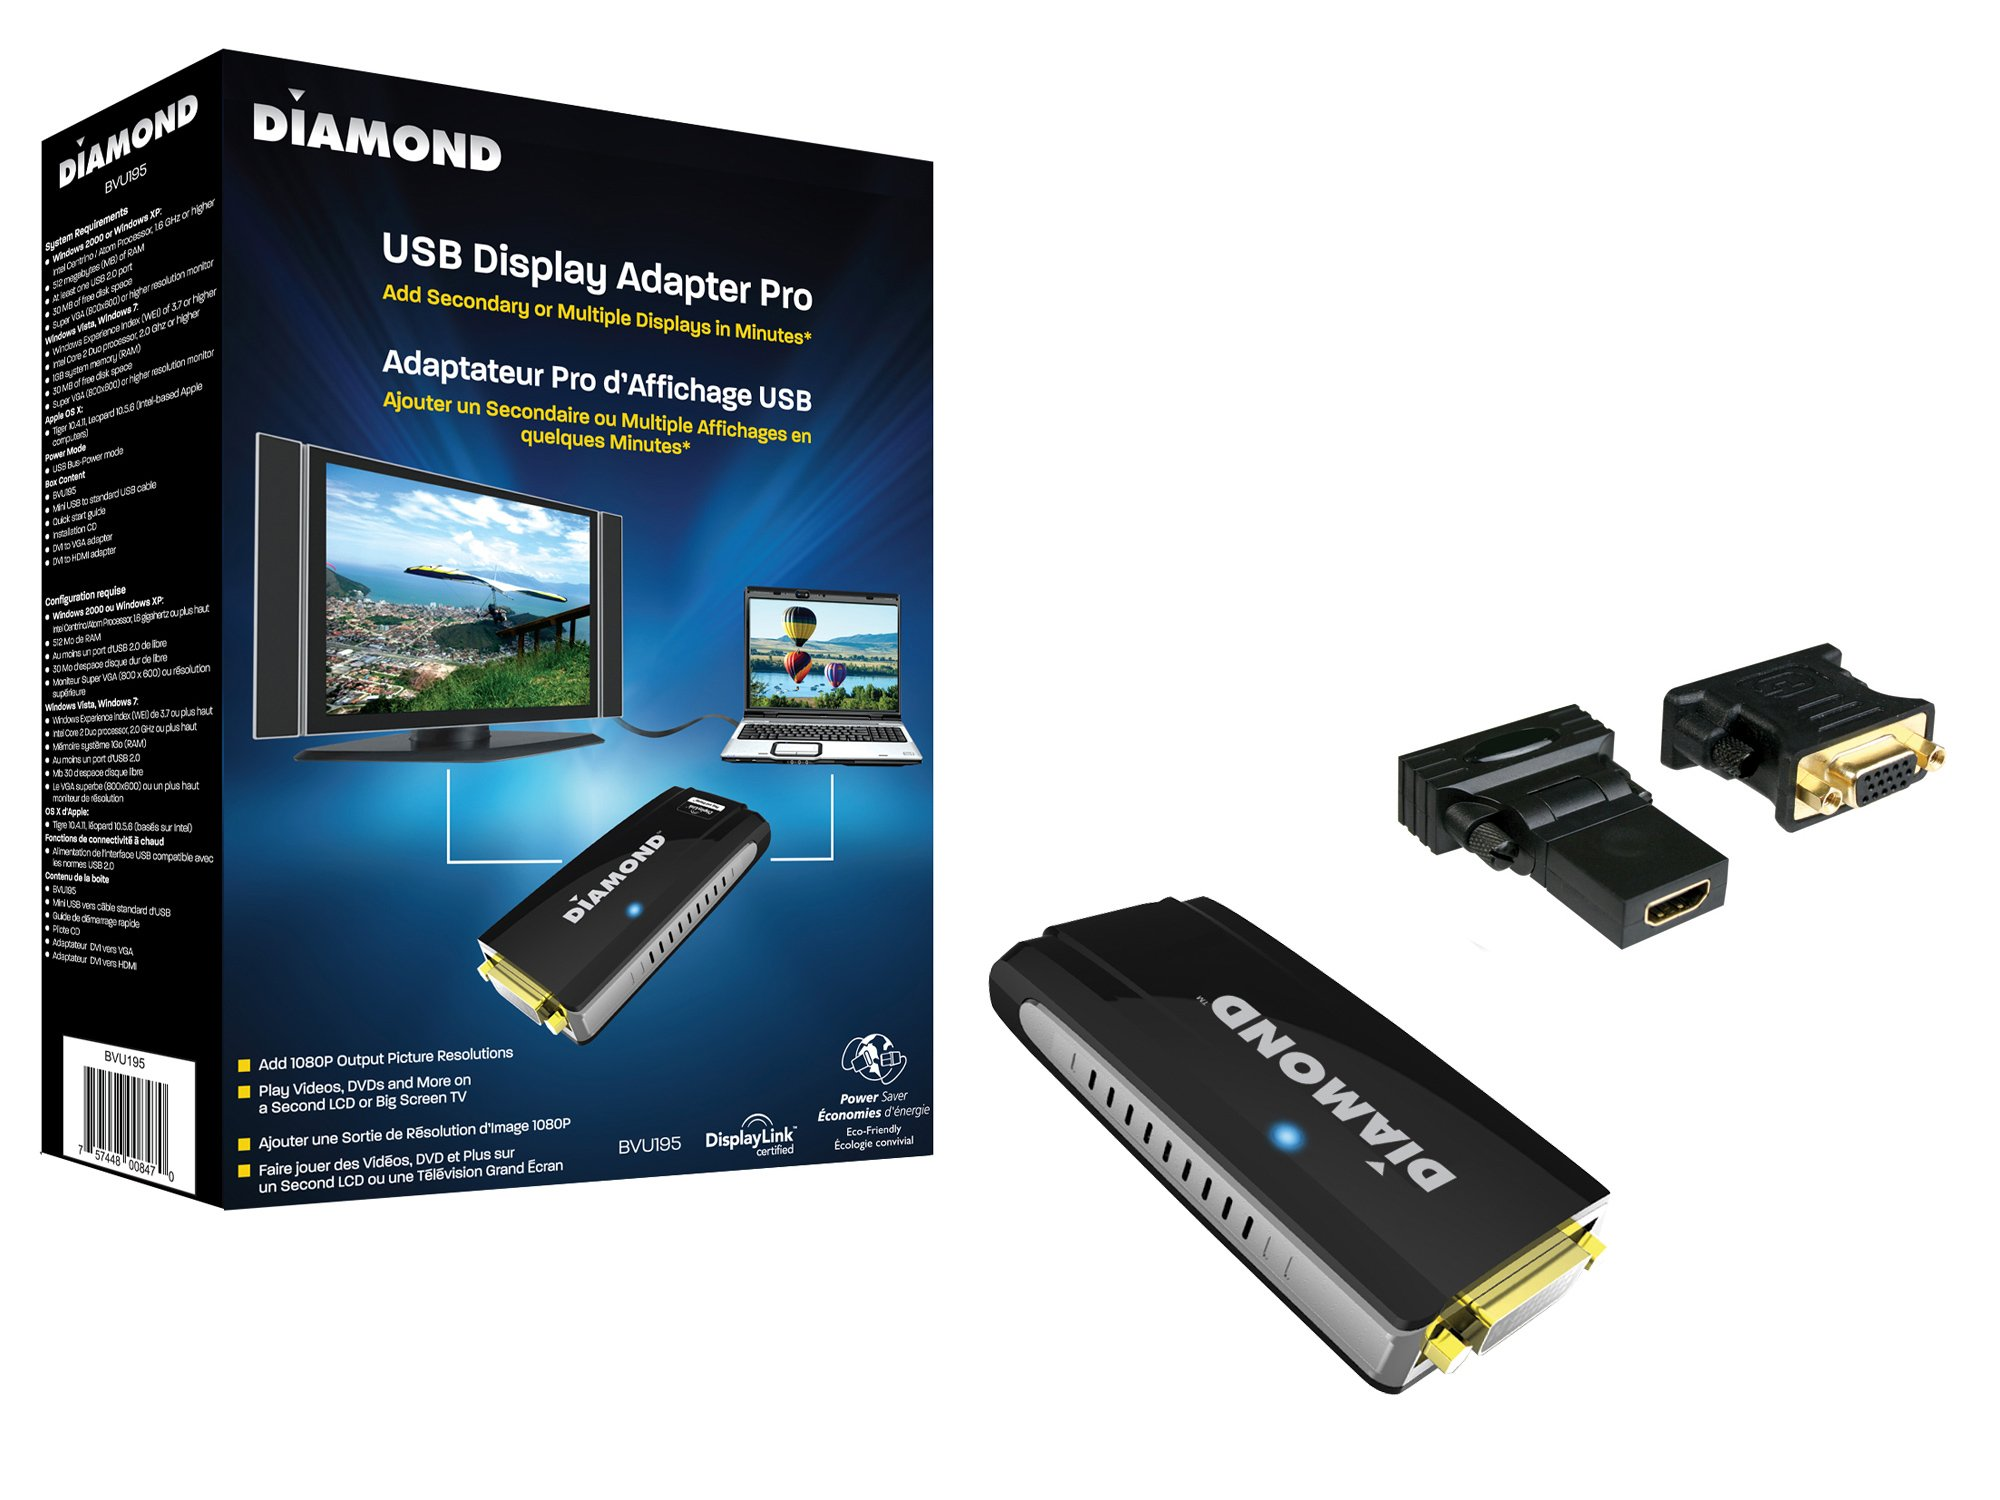 Diamond Multimedia BVU195 USB 2.0 to VGA/DVI/HDMI Video Graphics Adapter up to 2048x1152 / 1920x1080 - Windows 10, 8.1, 8, 7, XP, MAC OS and Android 5.0 and Higher by Diamond Multimedia